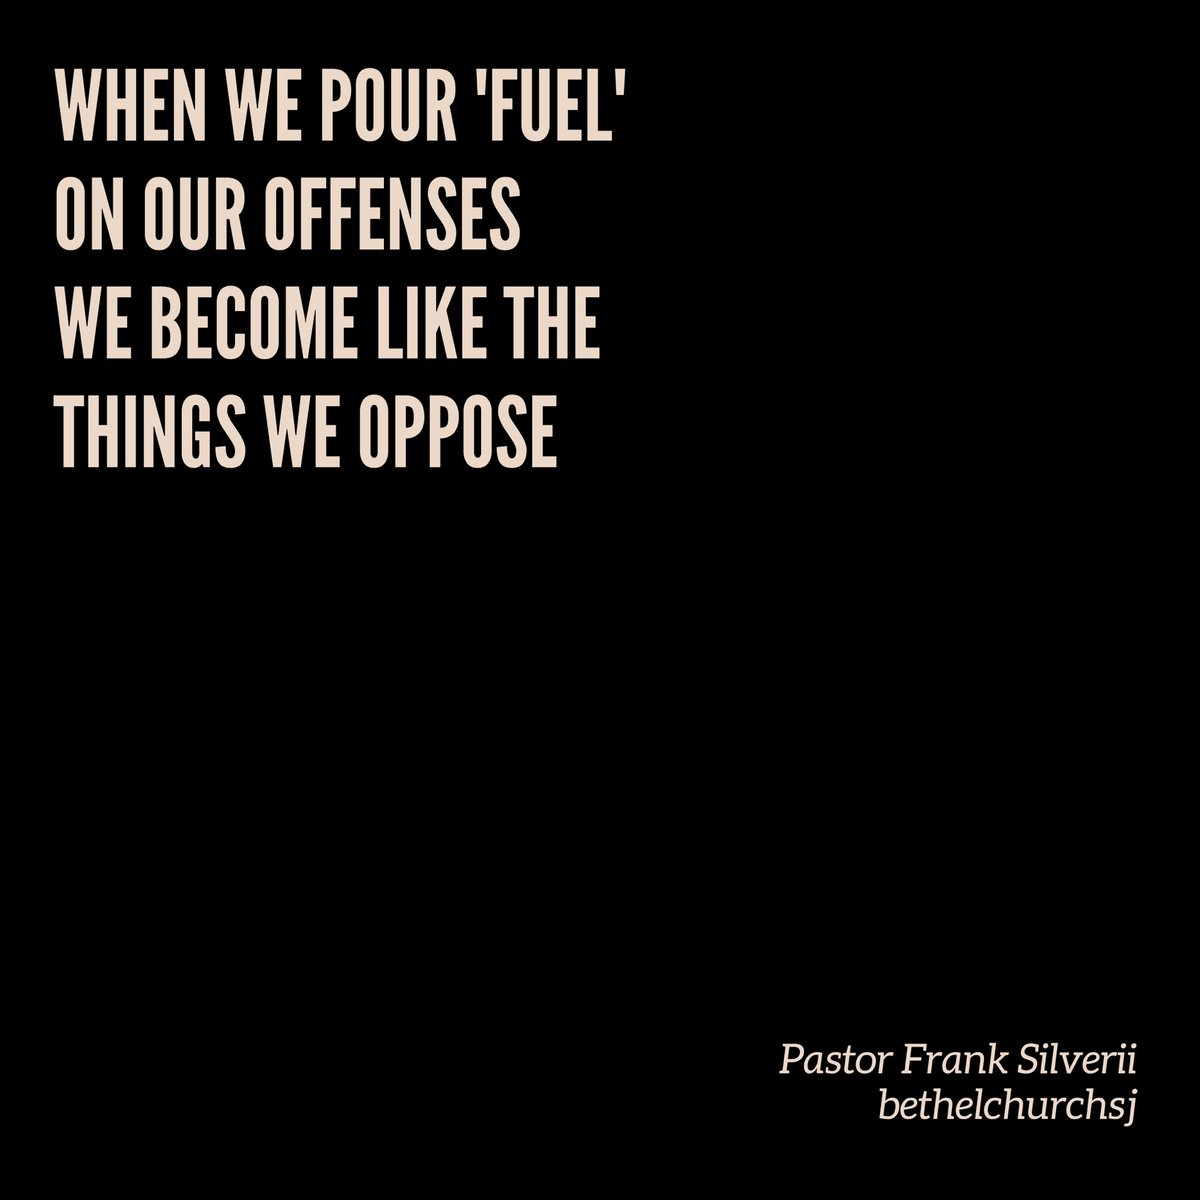 """""""When we pour 'fuel' on our offenses, we bring like the things we oppose."""" -Pastor Frank Silverii, Hot Topics sermon  #socialmedia #politics #culturepic.twitter.com/rY53KrZ8qb"""